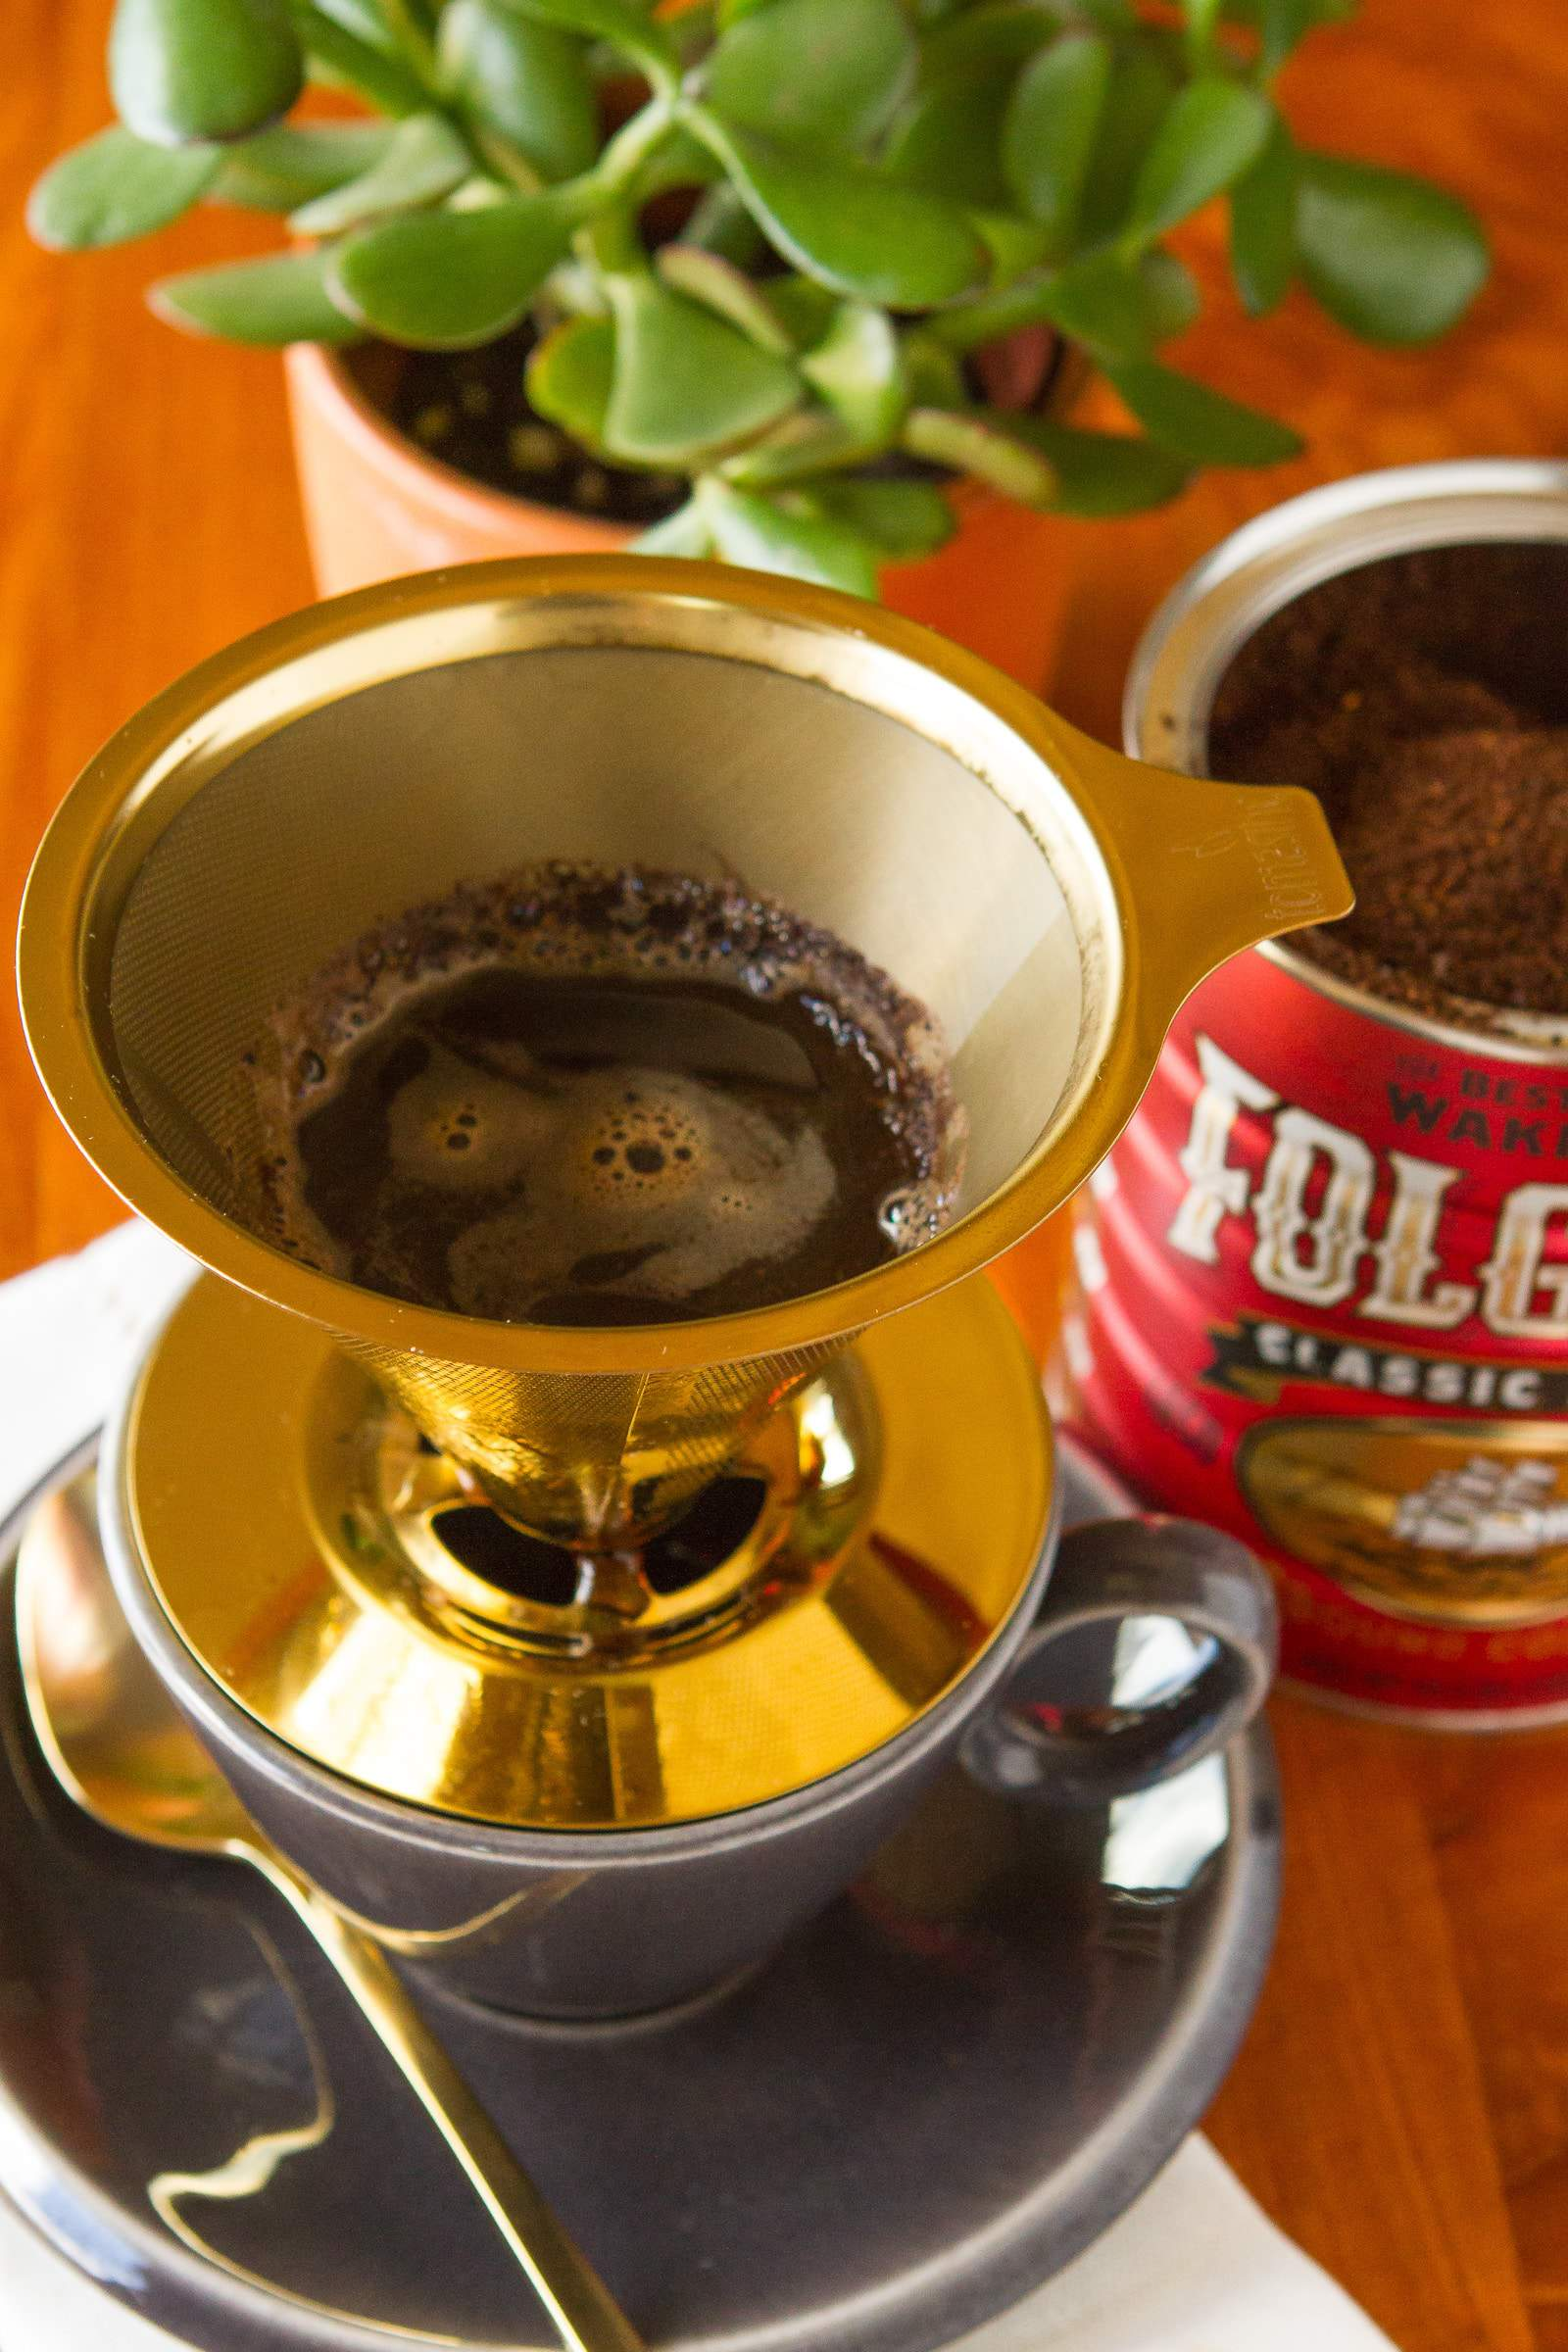 Pour Over Morning Coffee with Folgers